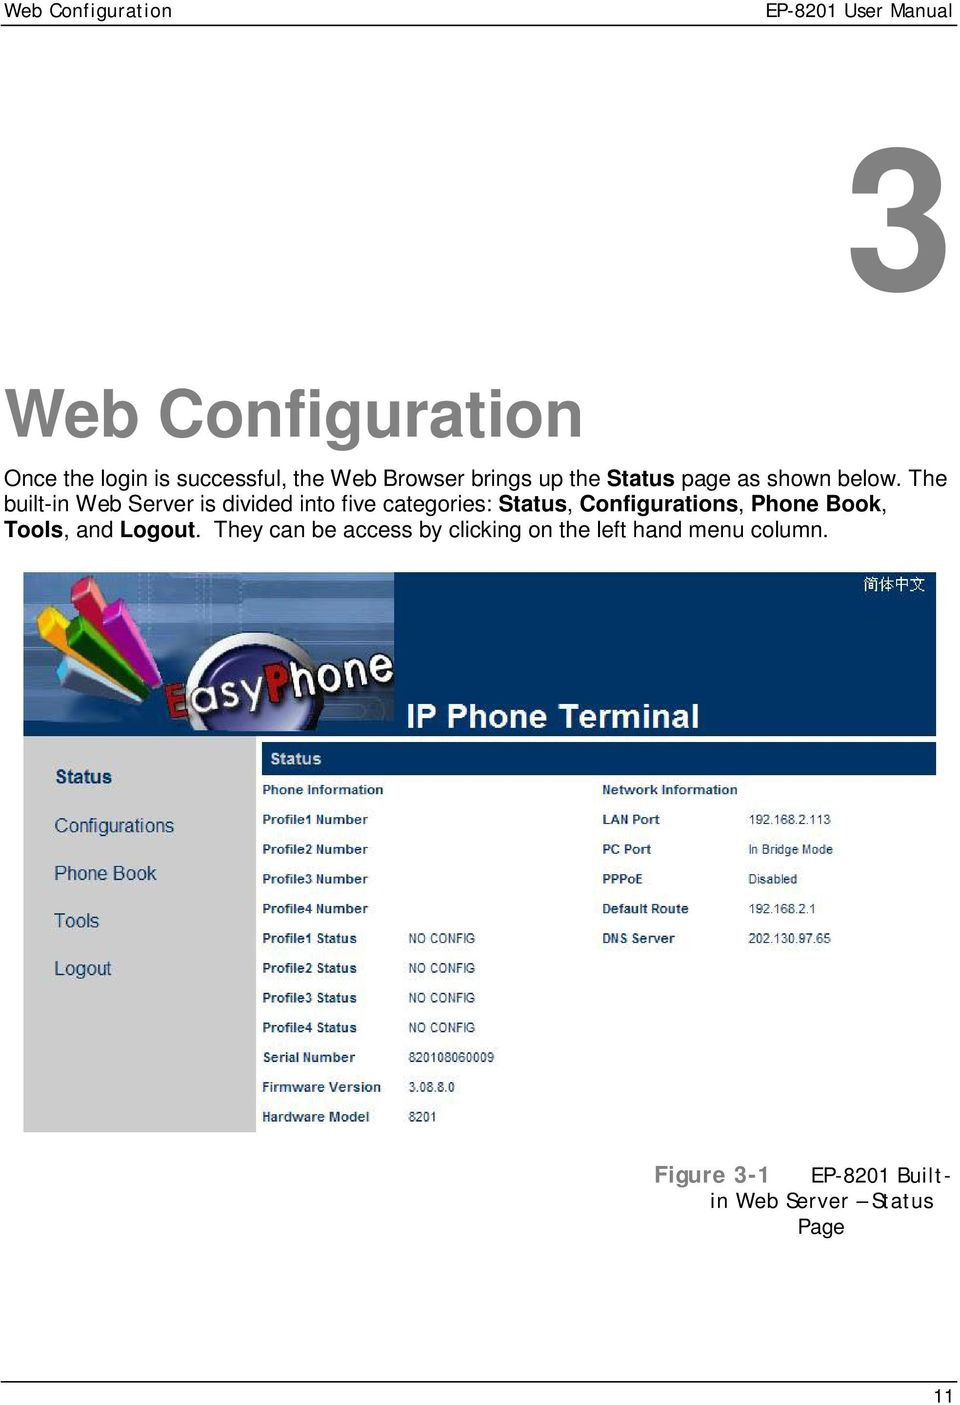 The built-in Web Server is divided into five categories: Status, Configurations, Phone